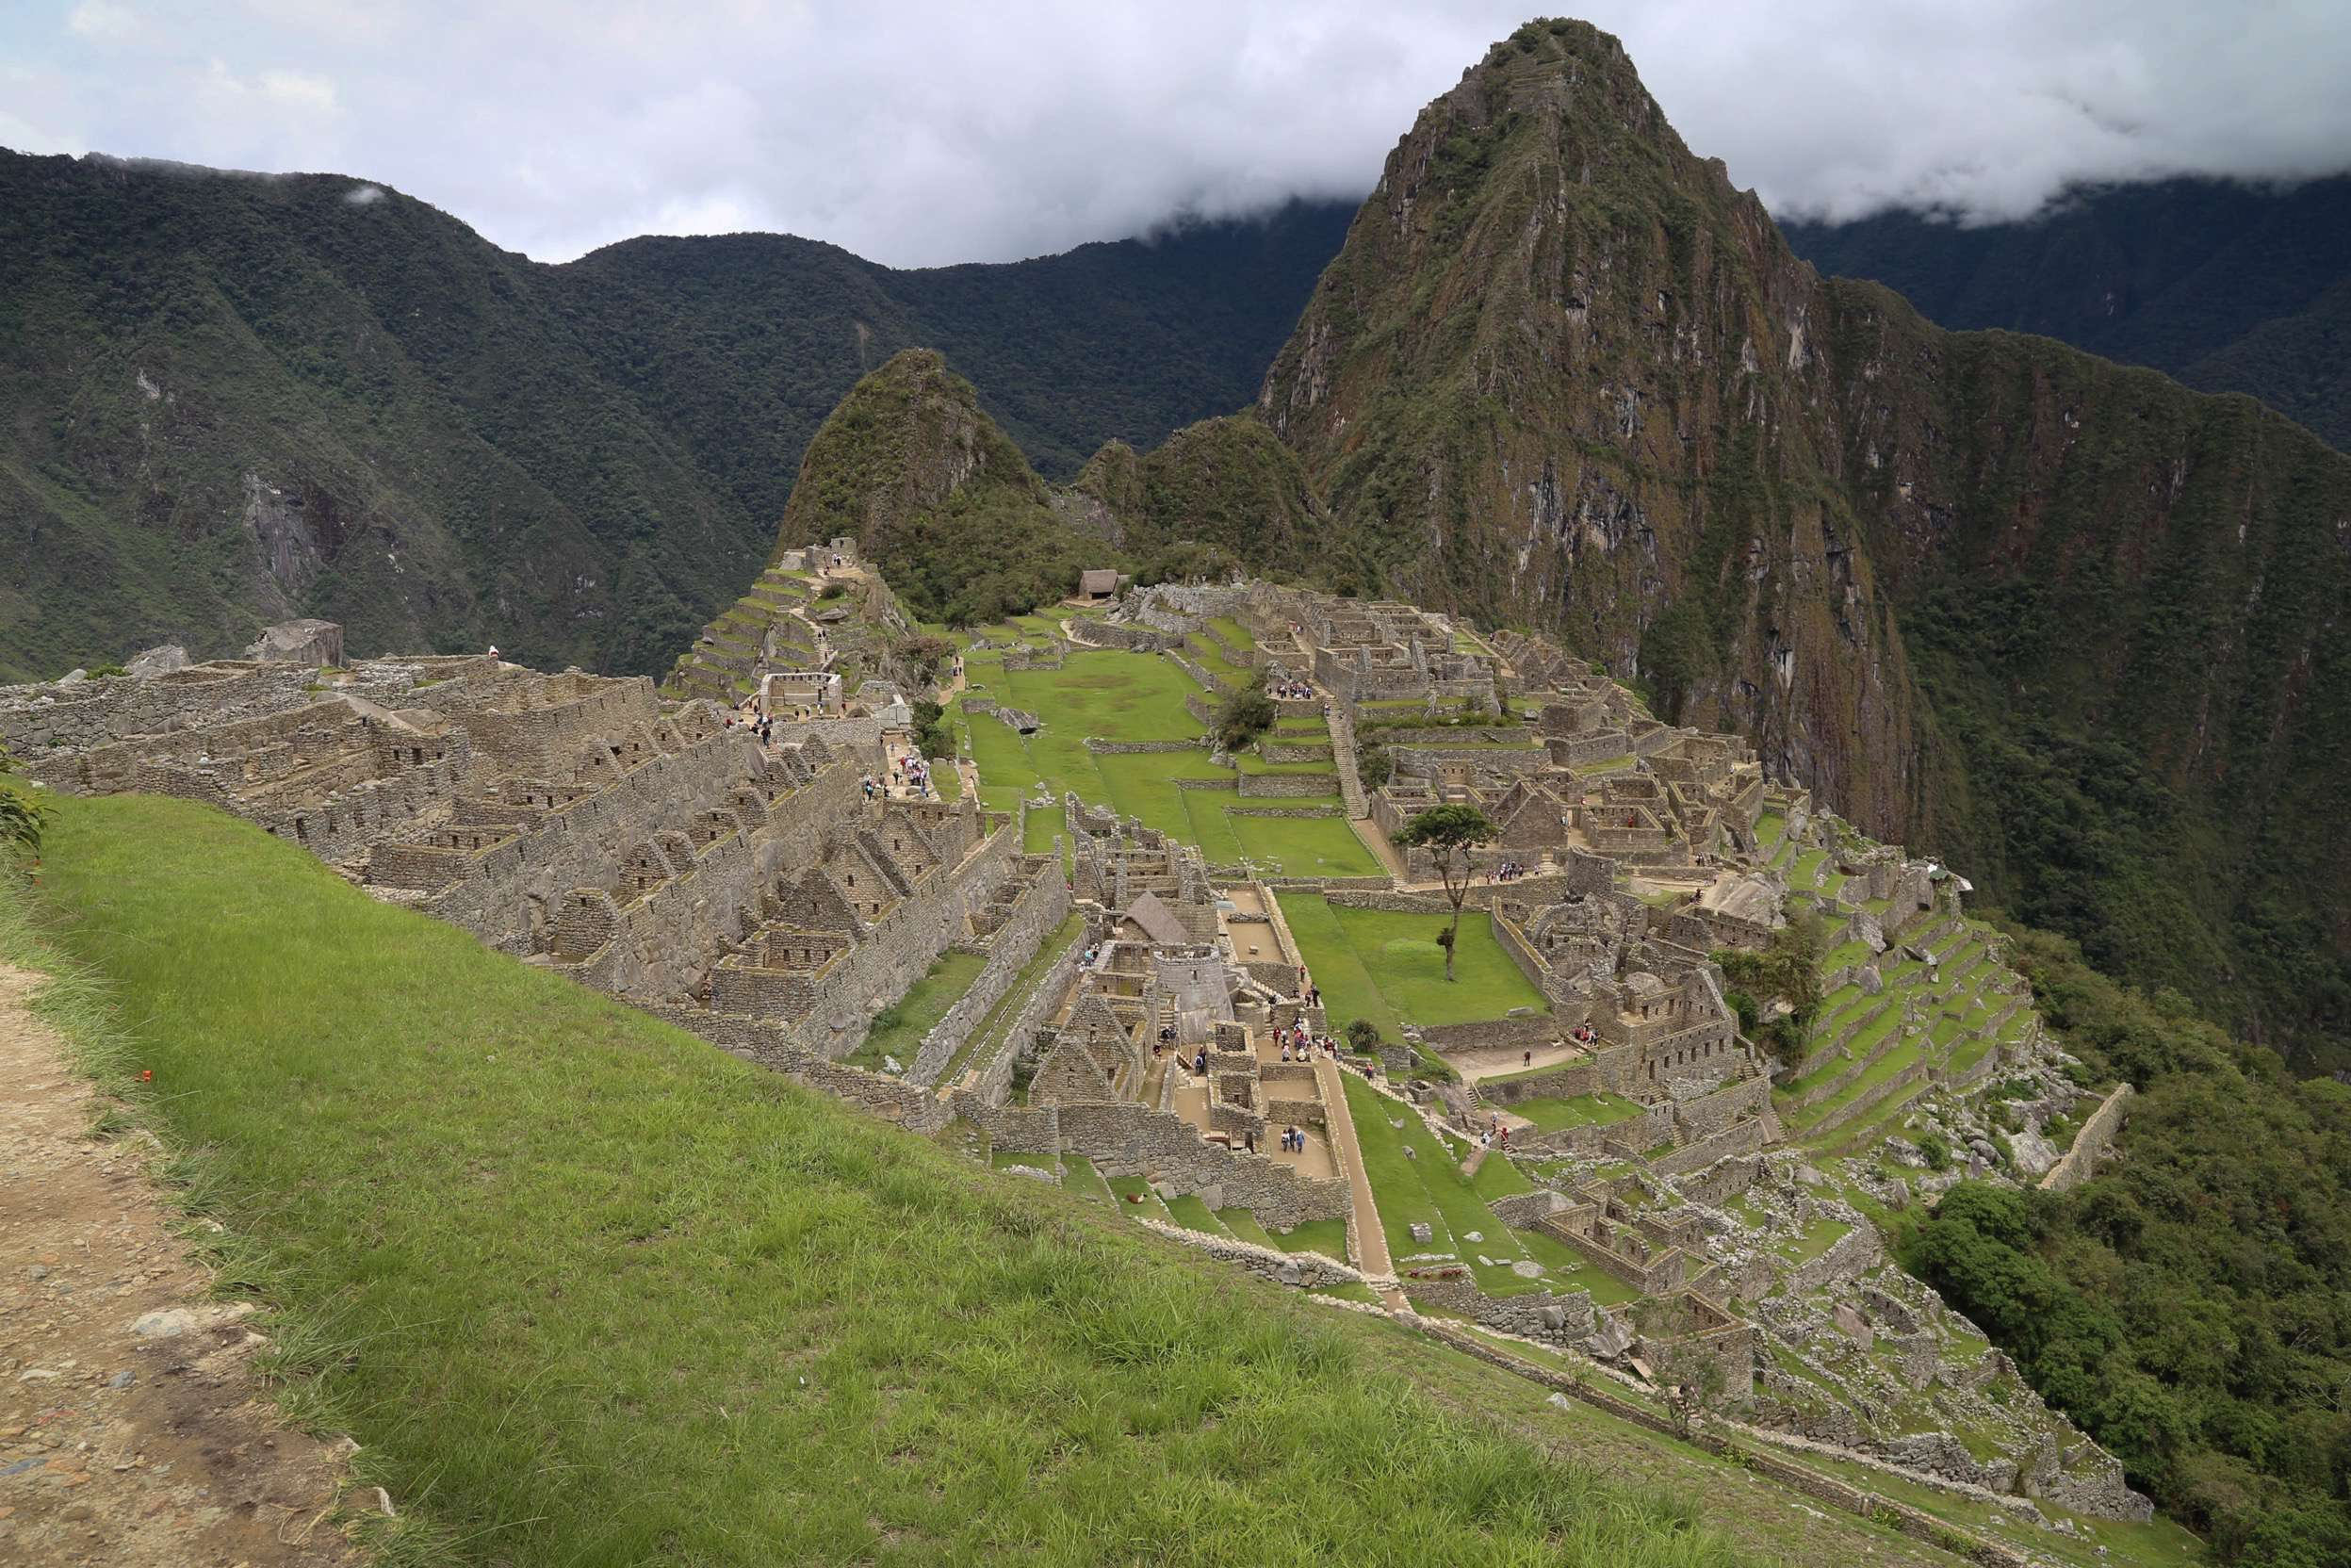 There are about 600 terraces, each carefully built by hand, more than 100 buildings, along with ramps and roads.